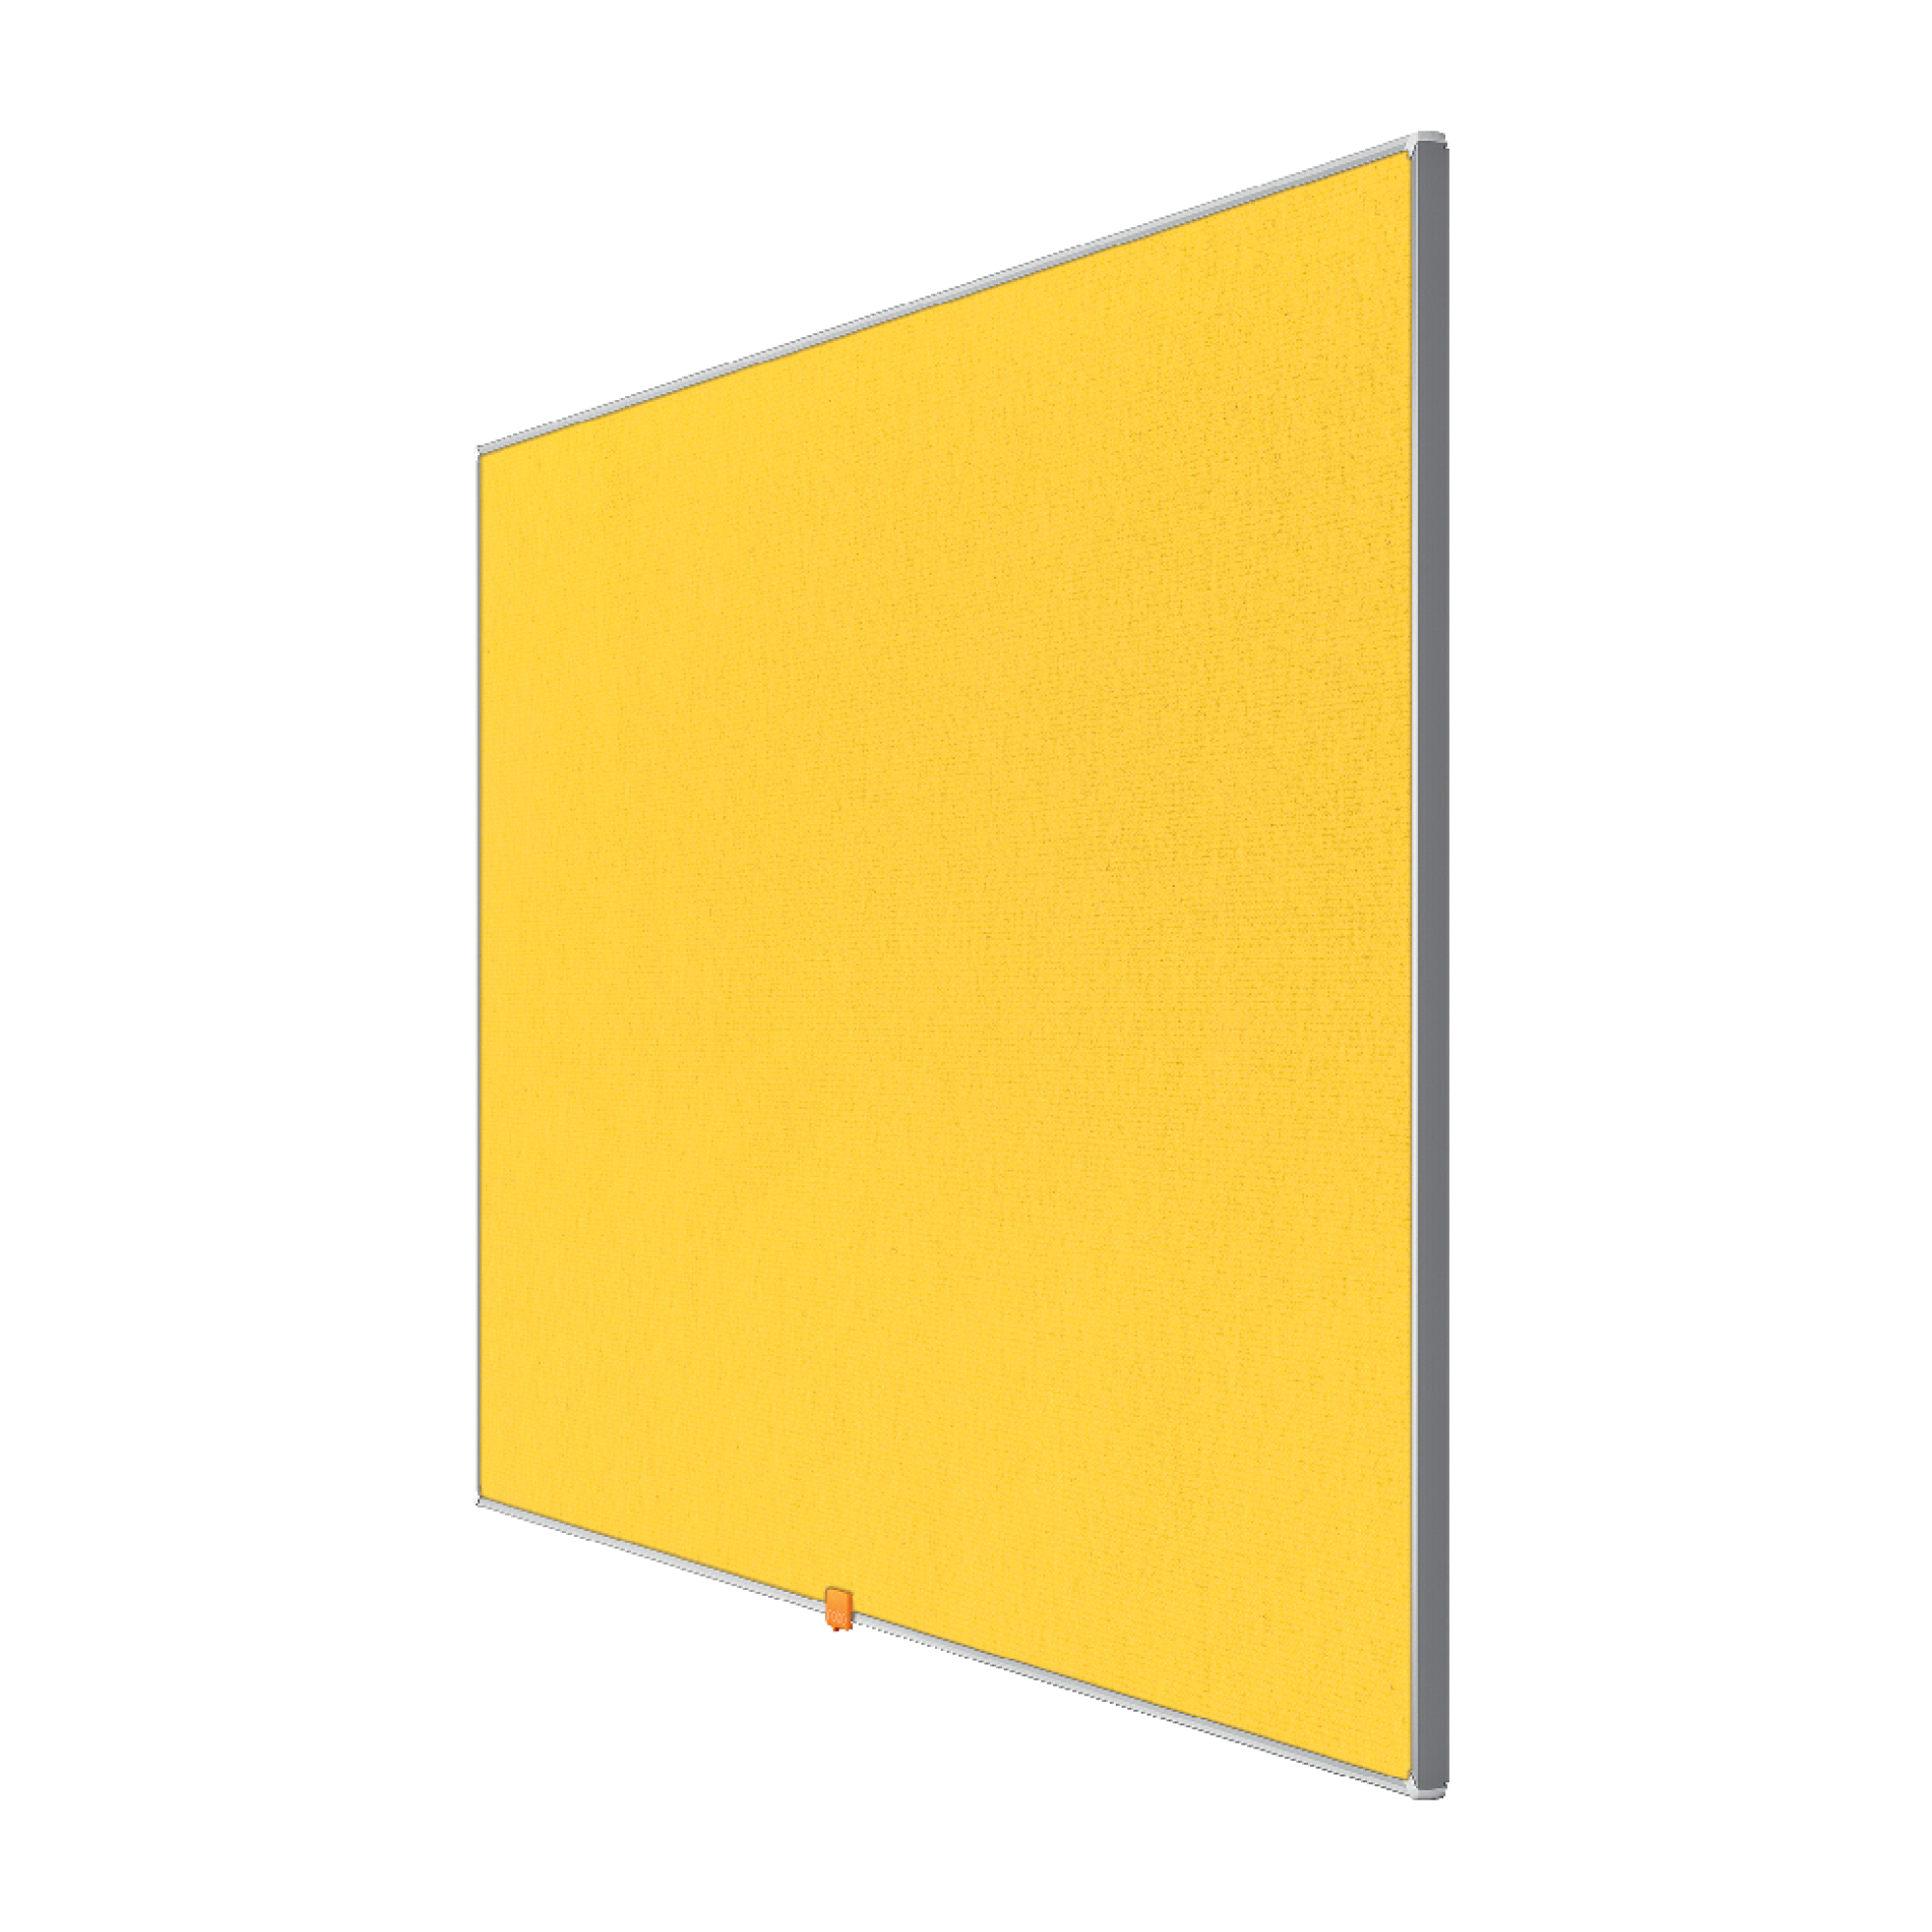 Bulletin boards or accessories Nobo 55 inch Widescreen Felt Board 1220x690mm Green Ref 1905320